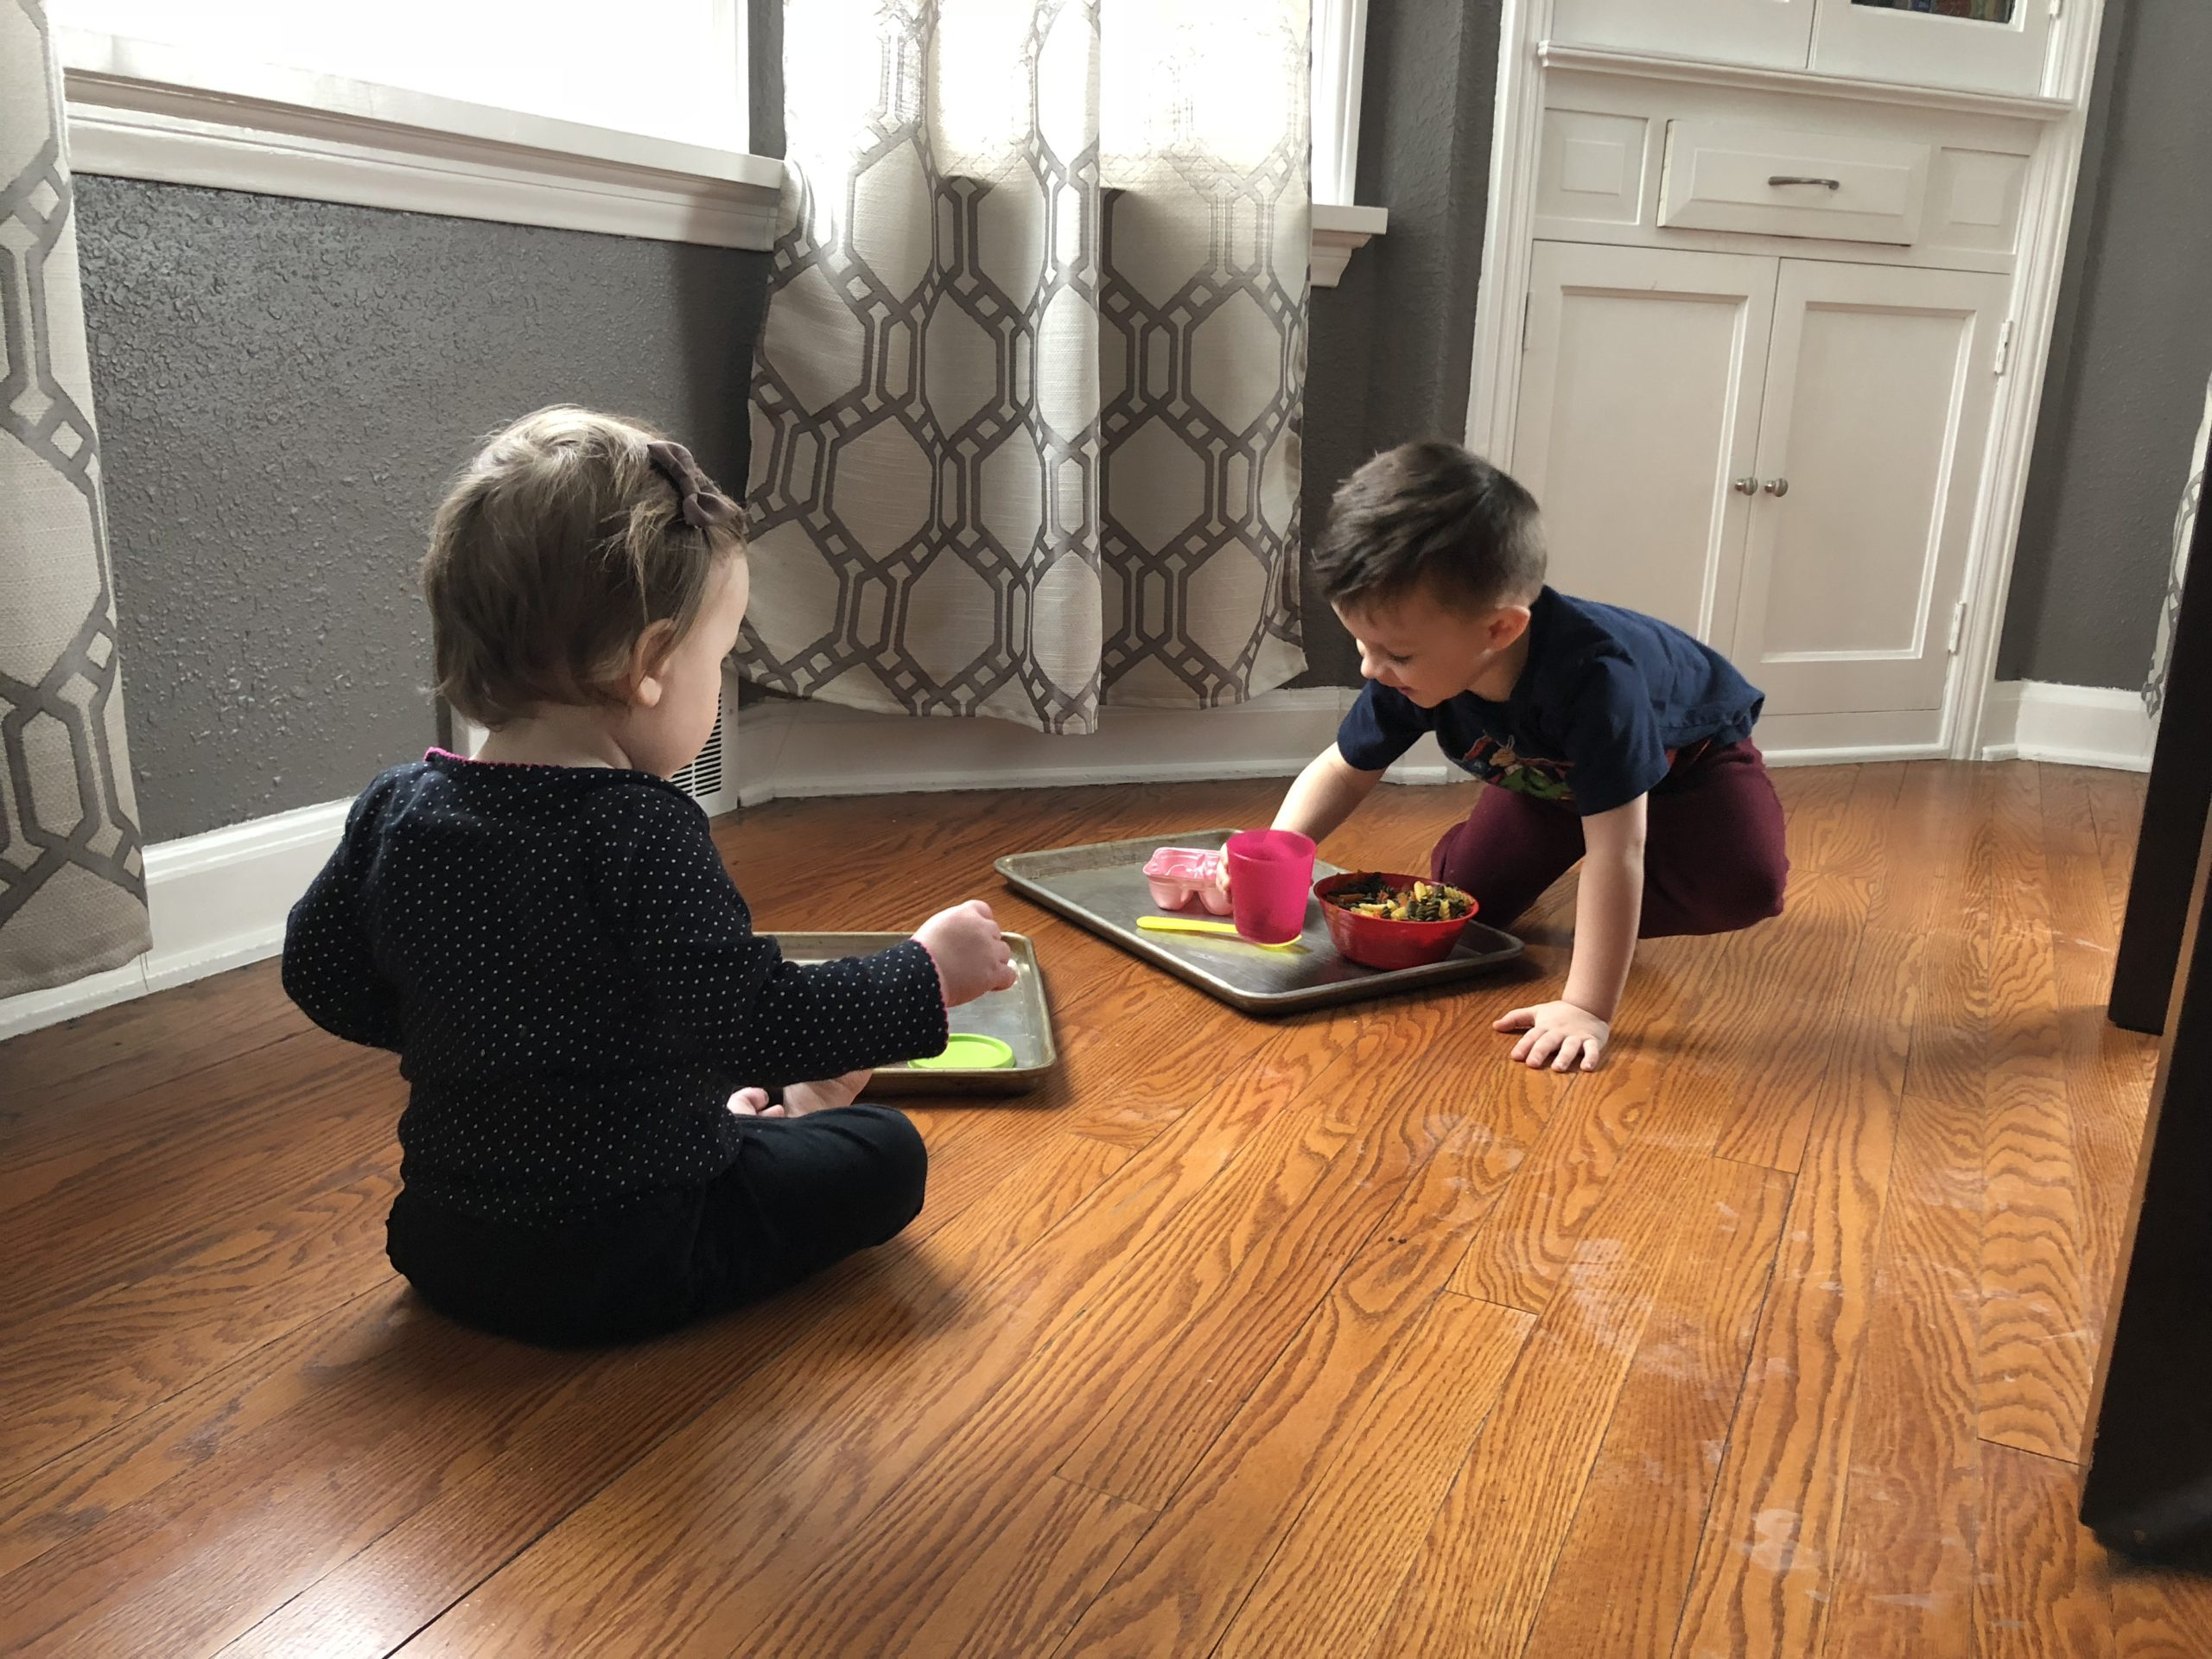 Independent Play Training